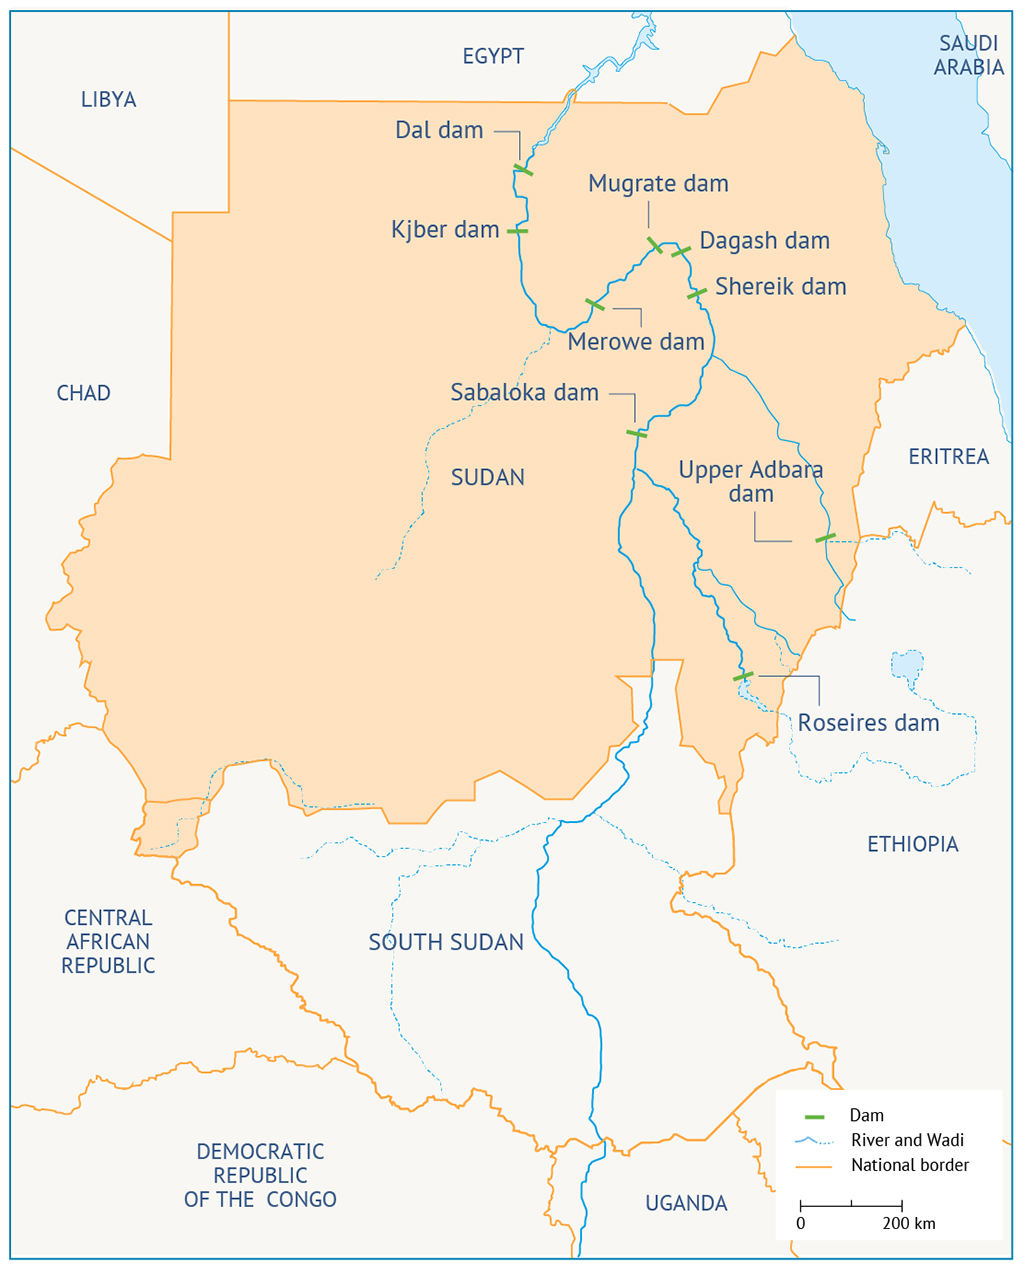 Map 1: Location of dams on the Nile in Sudan Dam السد السدود